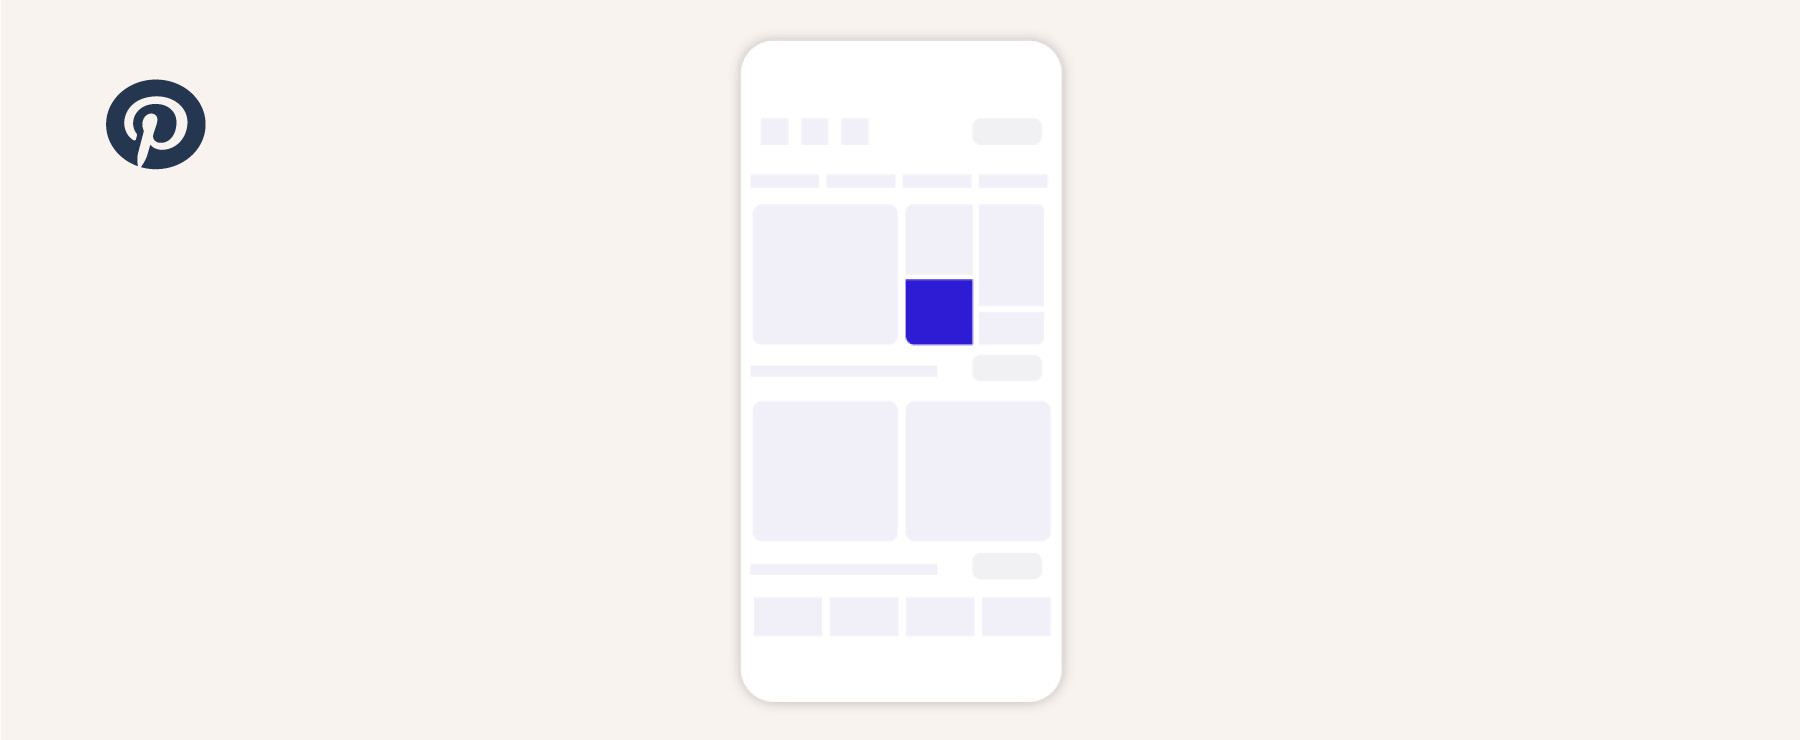 Pinterest small board thumbnail size guide